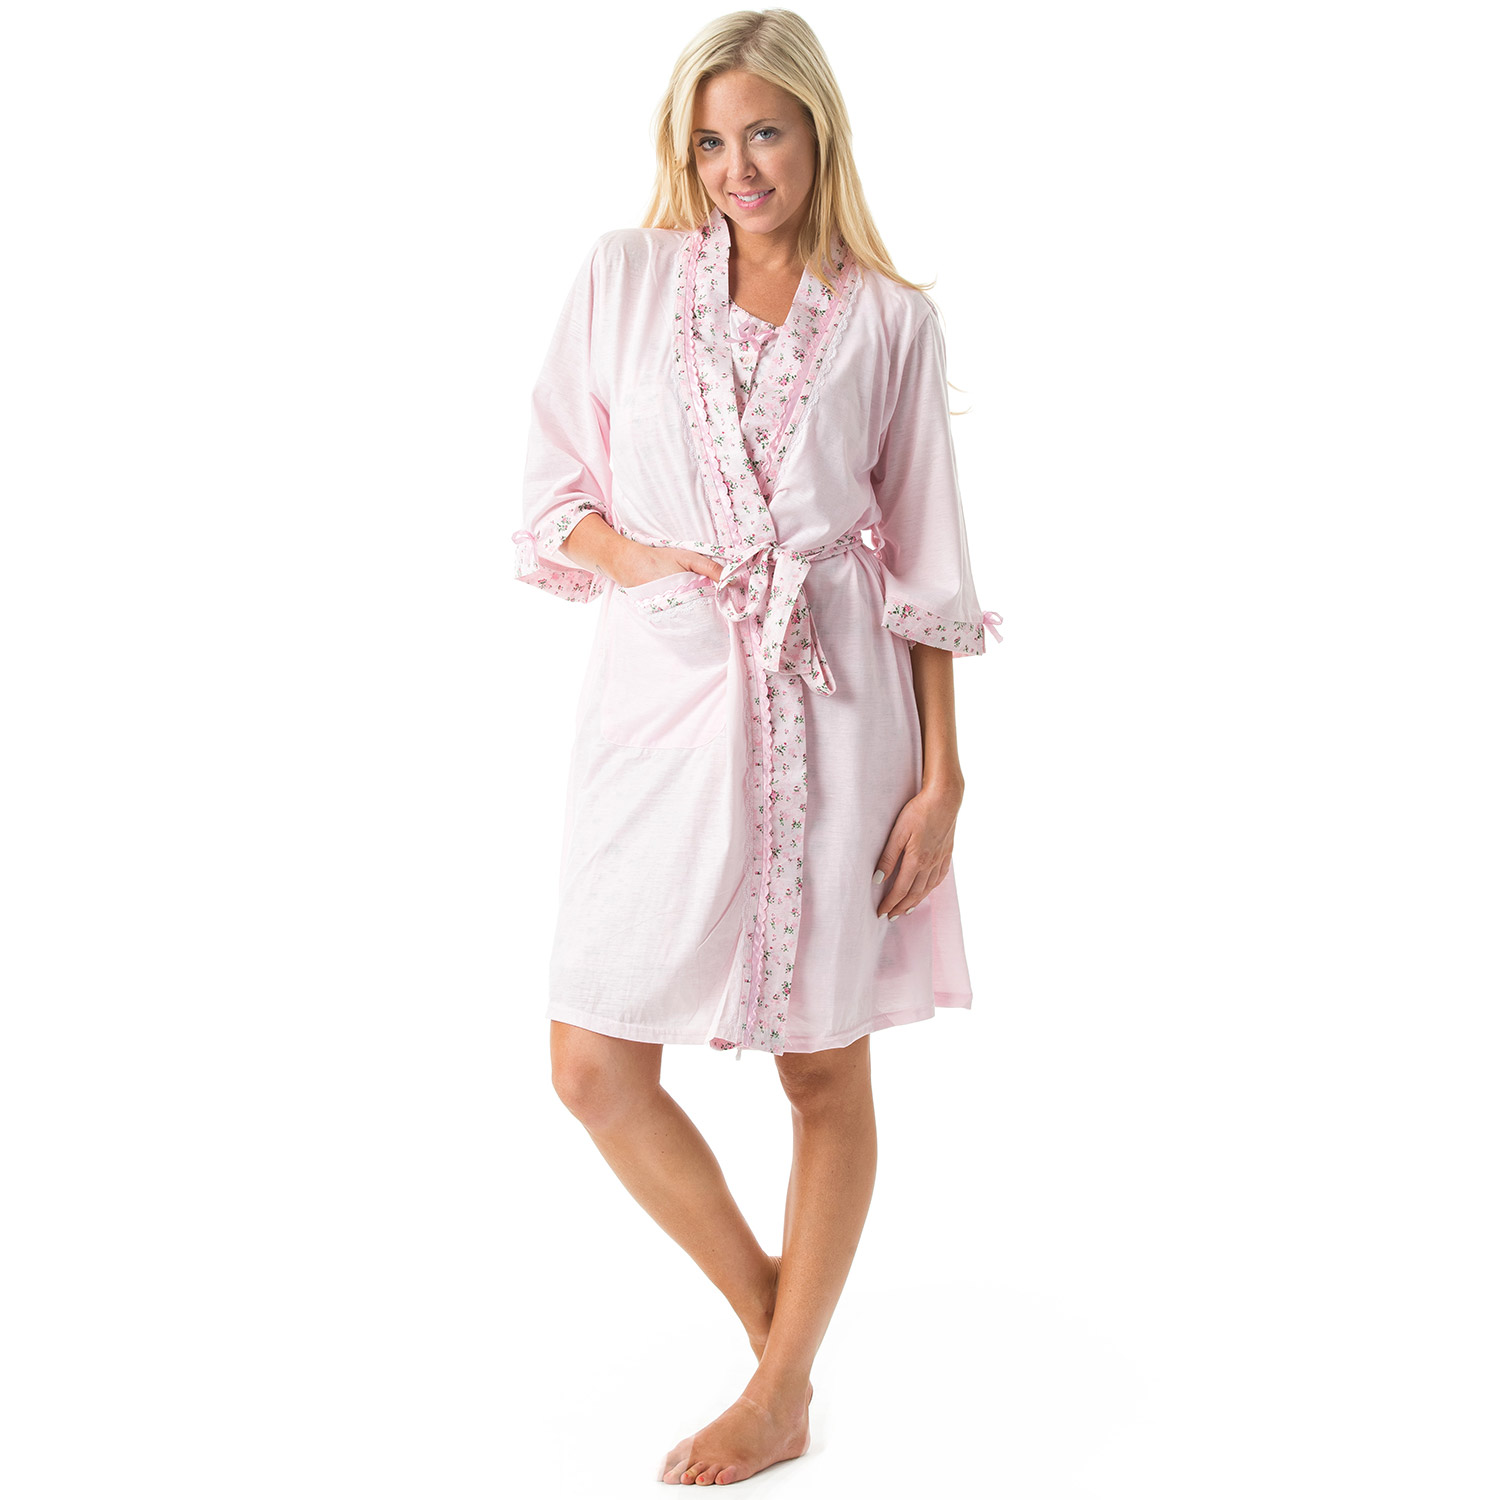 Casual Nights Women's Sleepwear 2 Piece Nightgown and Rob...